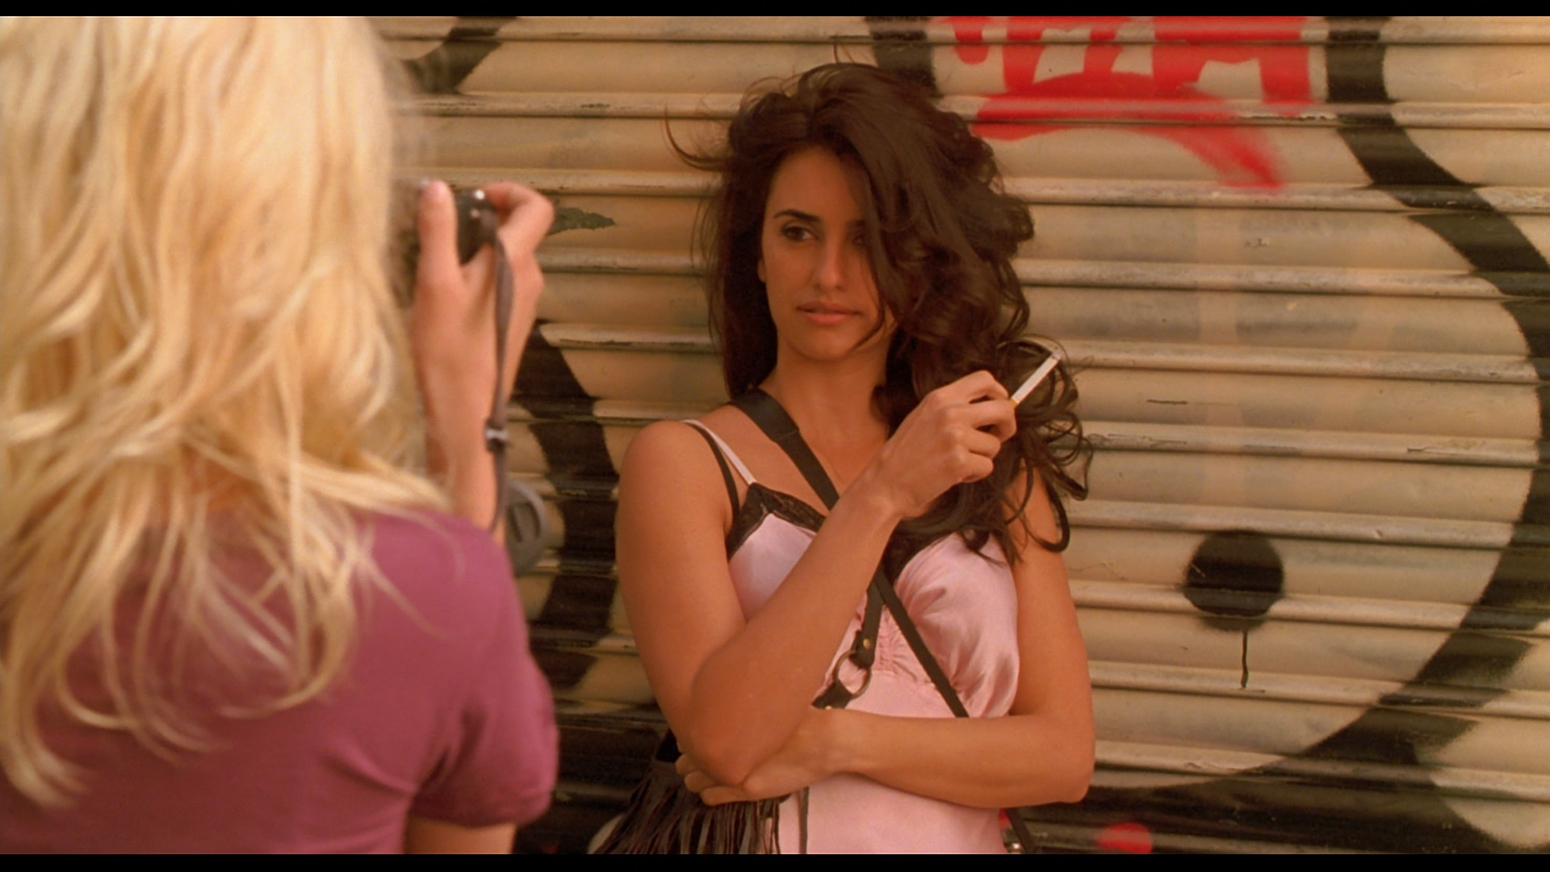 Vicky Cristina Barcelona, shot by Javier Aguirresarobe, ASC, AEC. (Credit: Sony Pictures Classics)